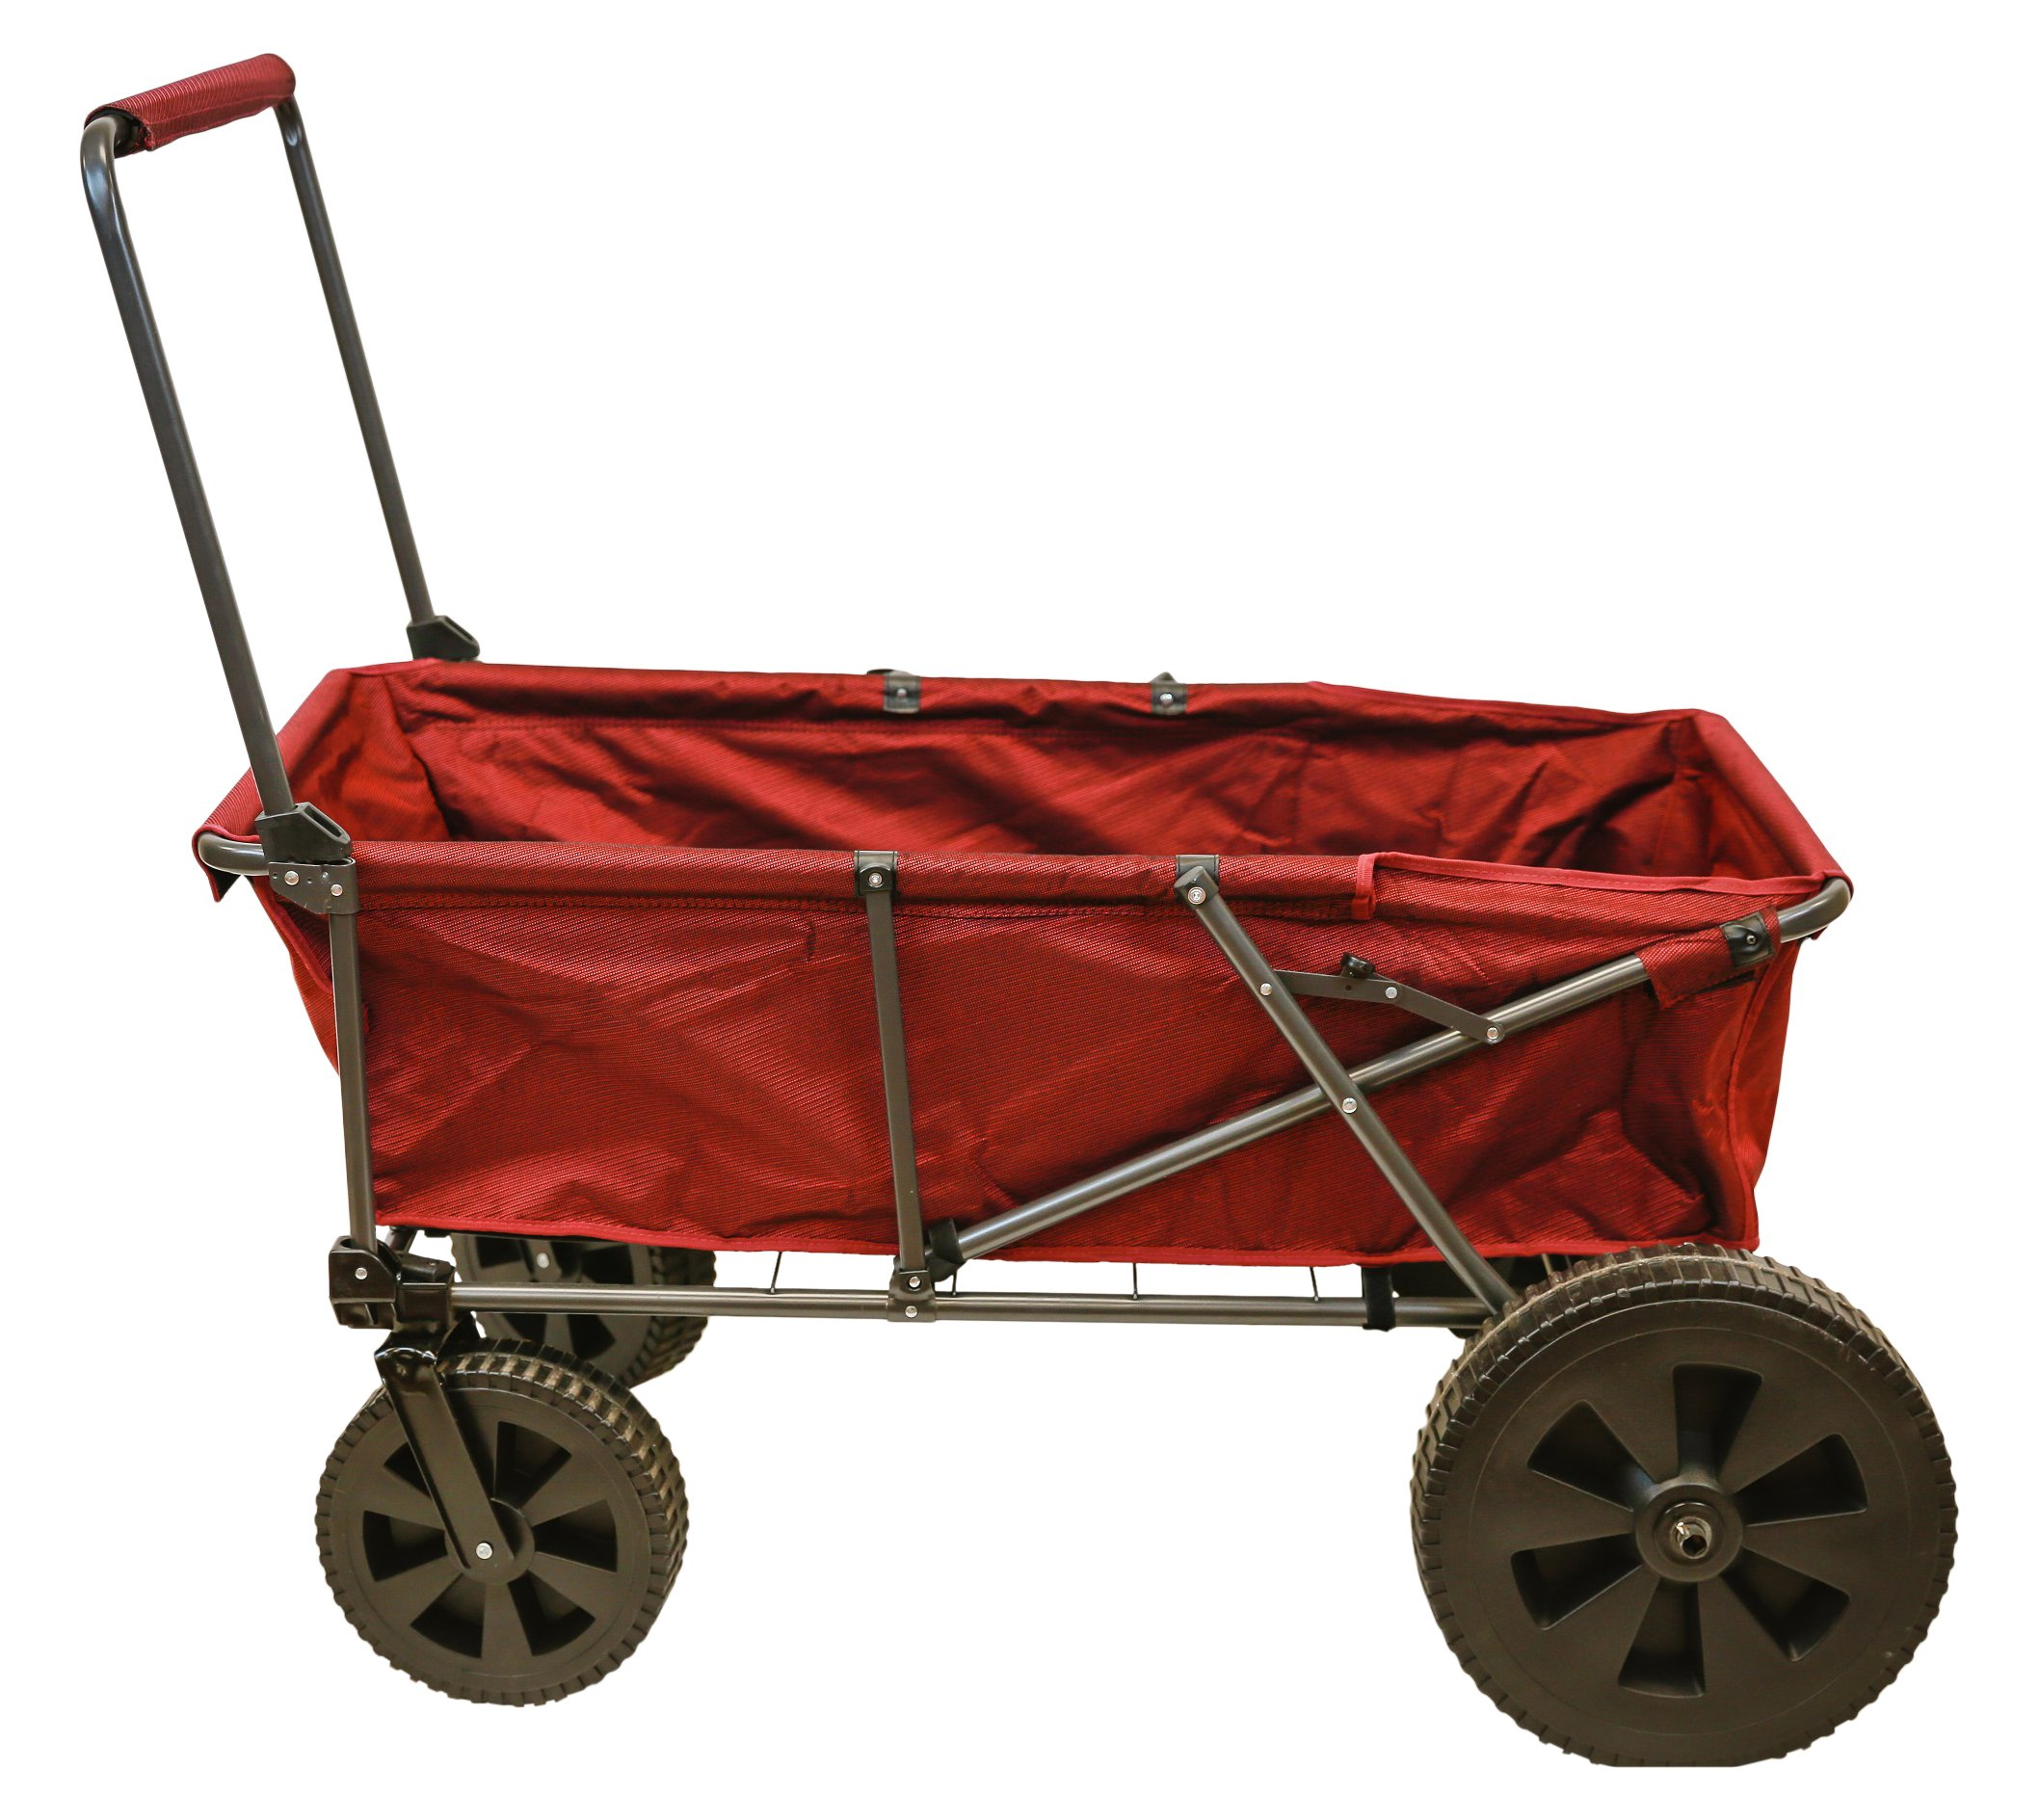 Pearington Sport Big Wheel Heavy Duty All Terrain Collapsible Folding Outdoor Utility Wagon Red